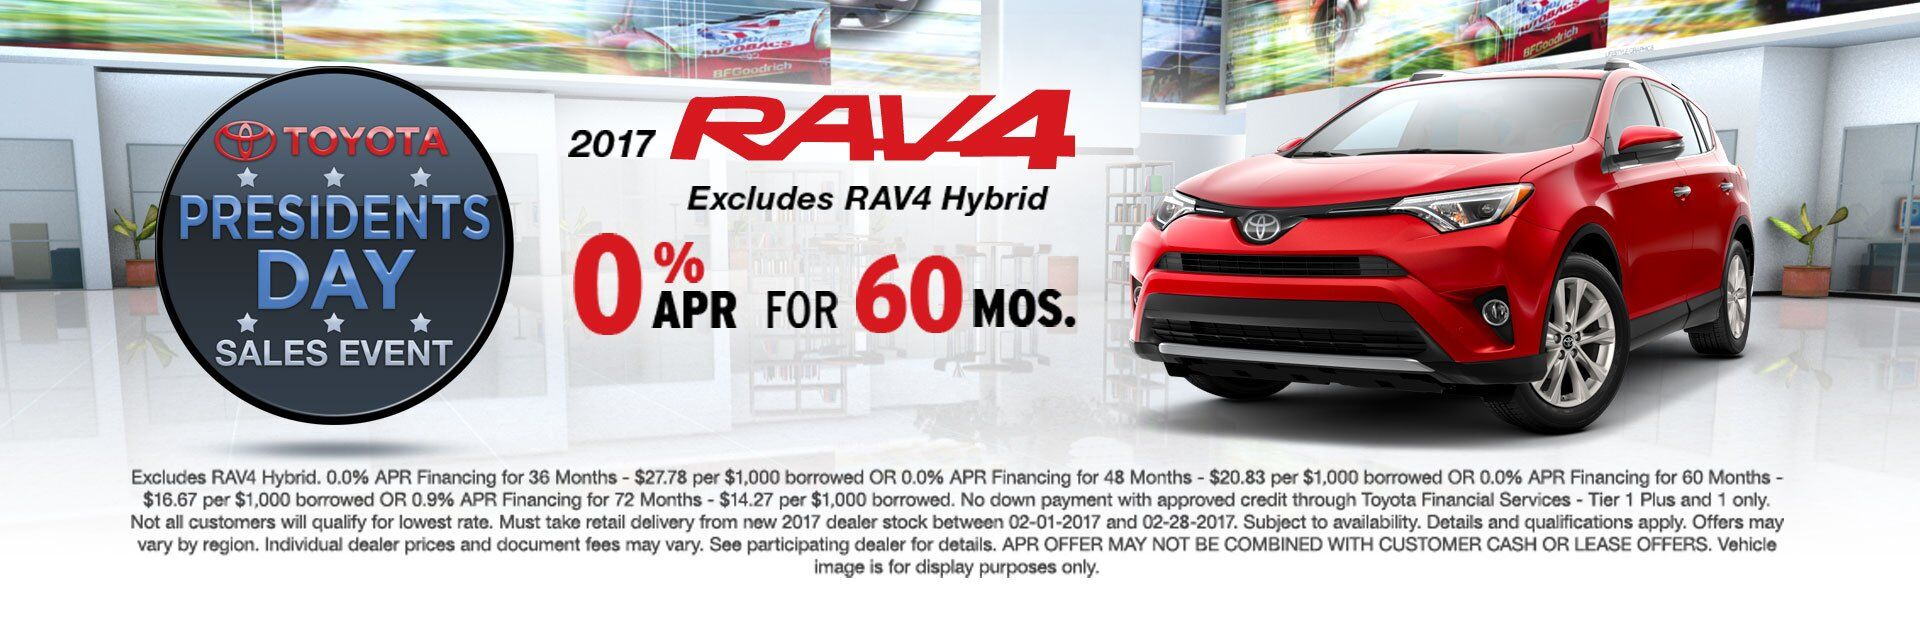 0% APR for 60 Mo on 2017 Toyota RAV4!